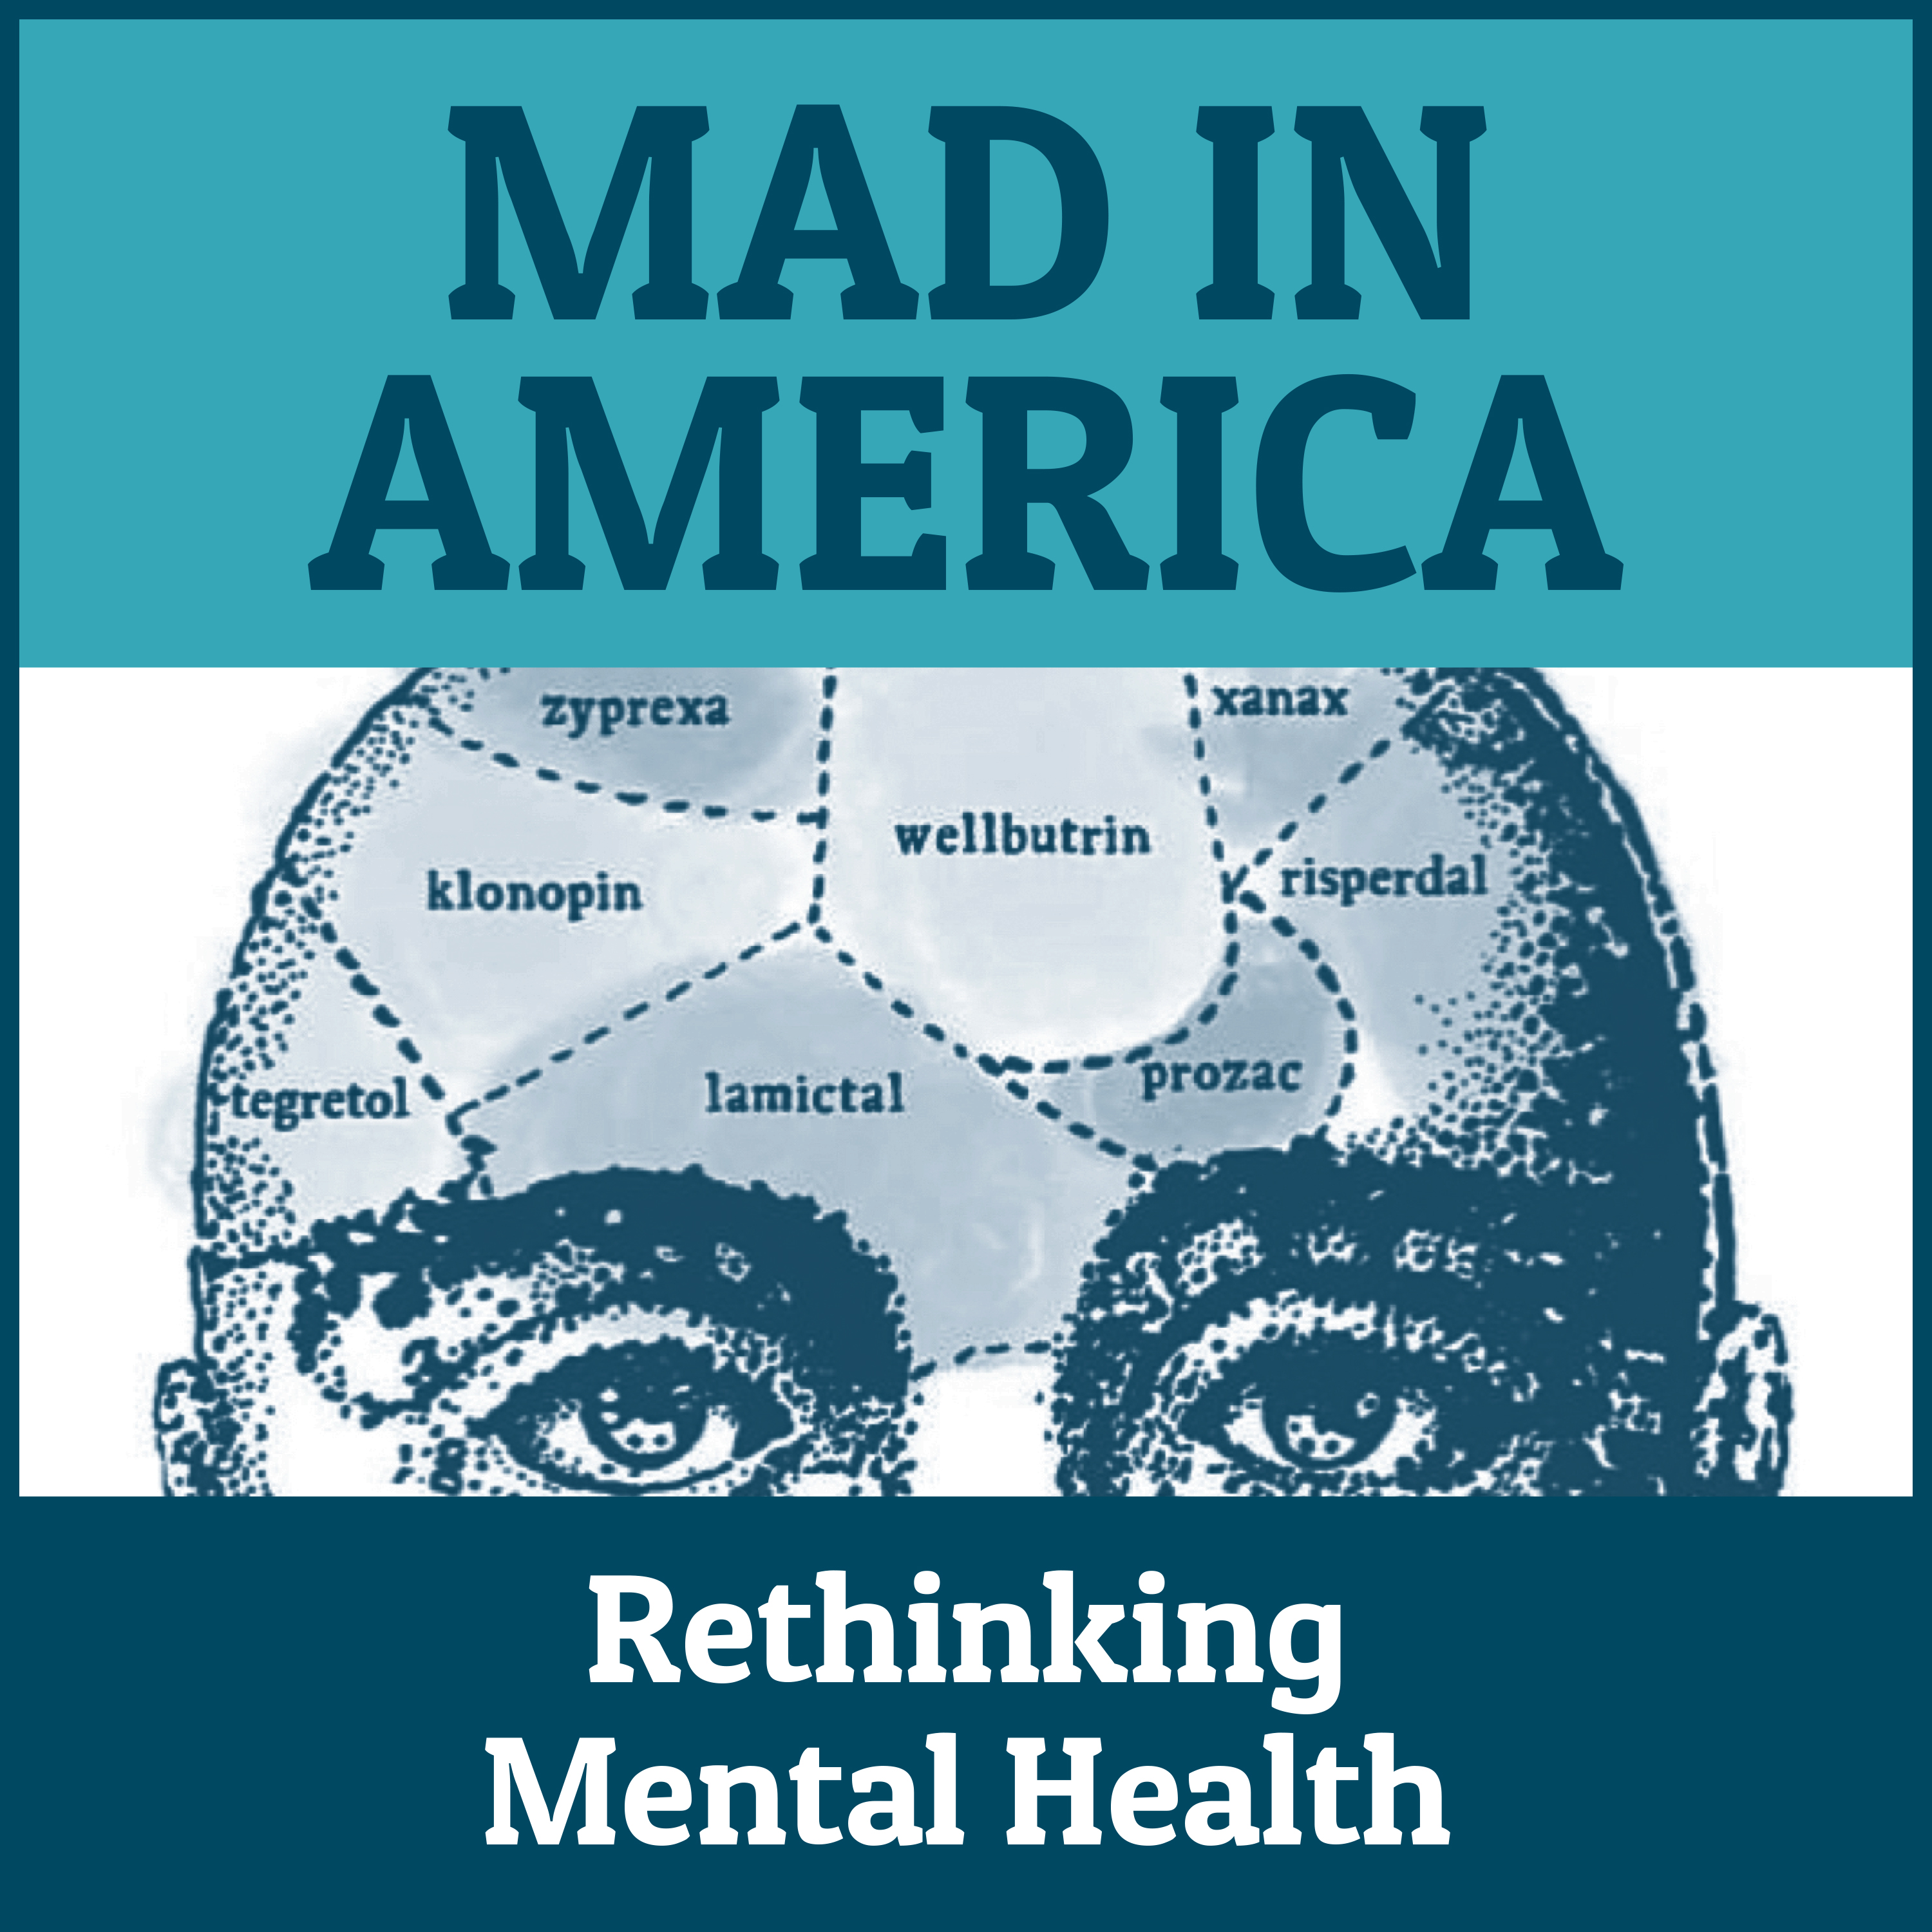 Mad in America: Rethinking Mental Health - Katrina Michelle - Psychedelics, Transformative Experiences and Healing